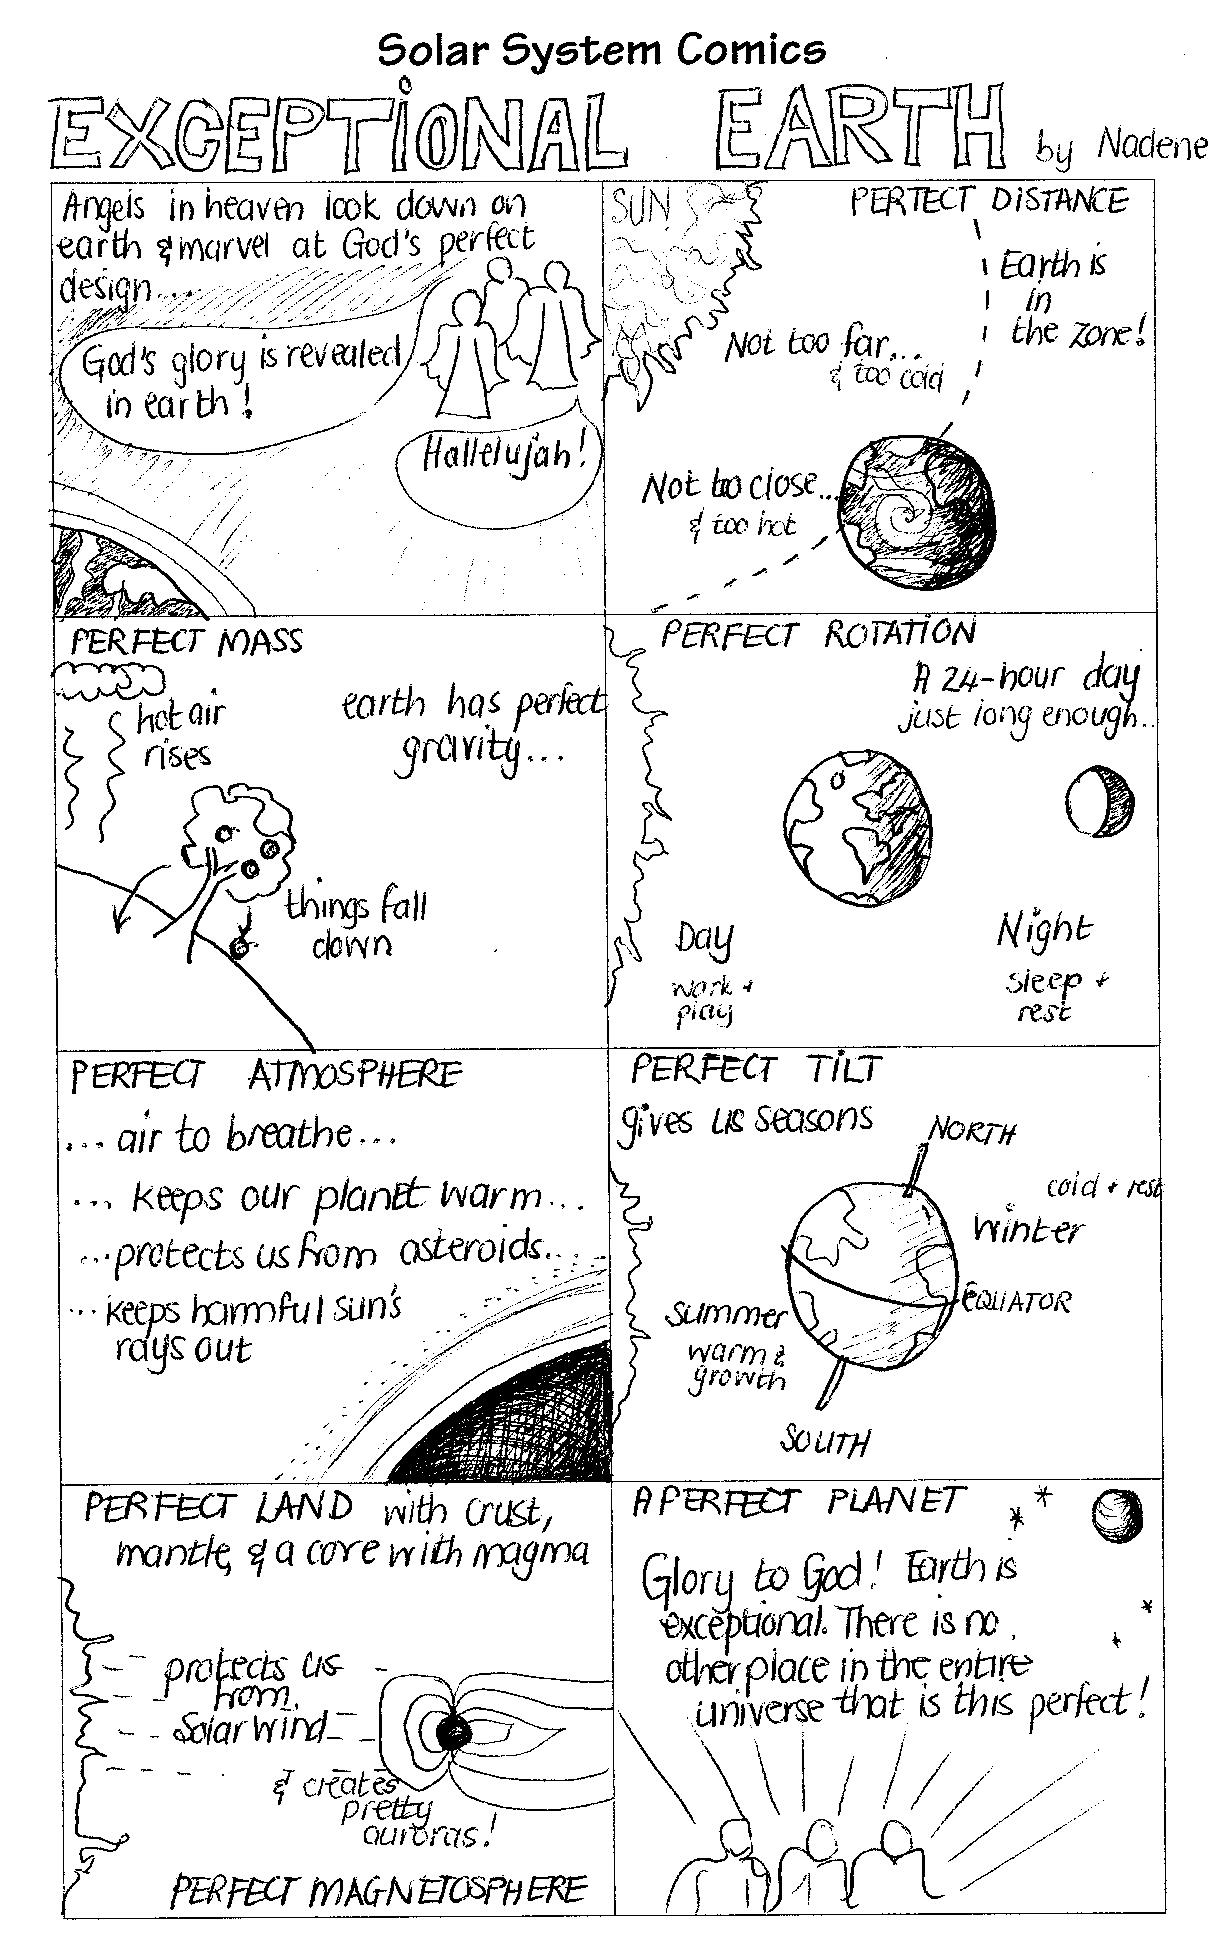 Solar System Comics Earth Amp Mars Practical Pages